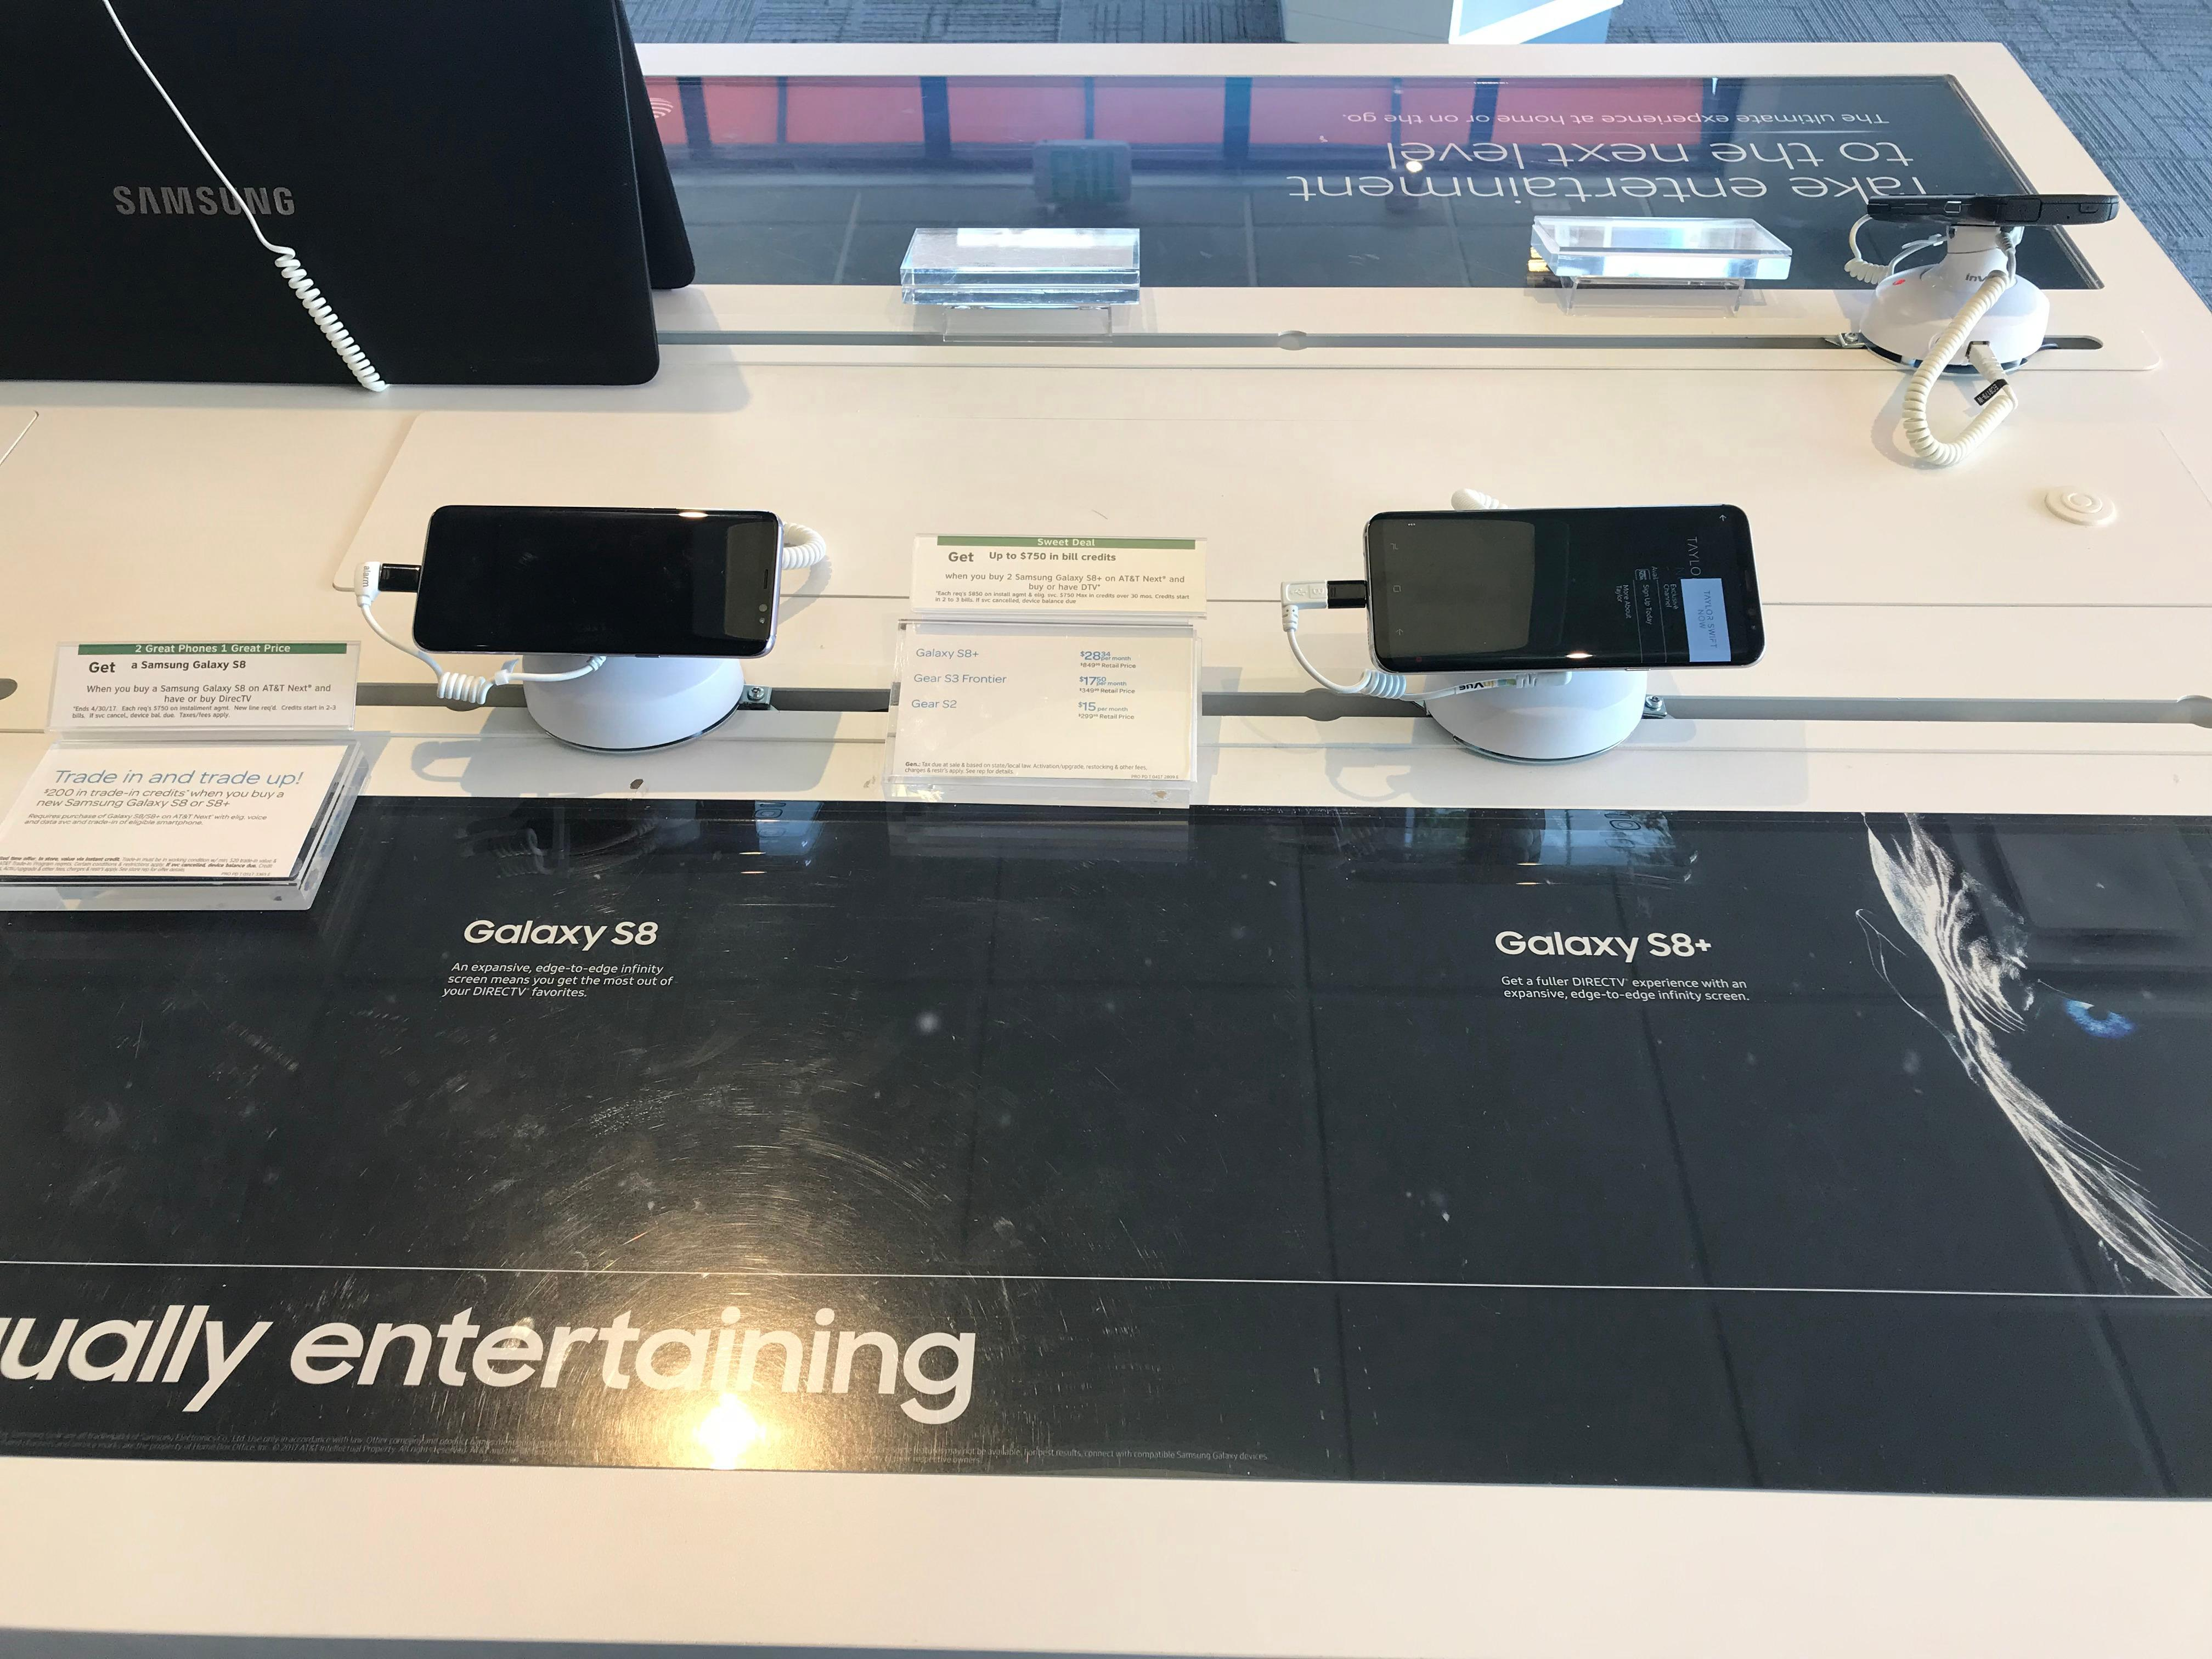 AT&T Store image 8